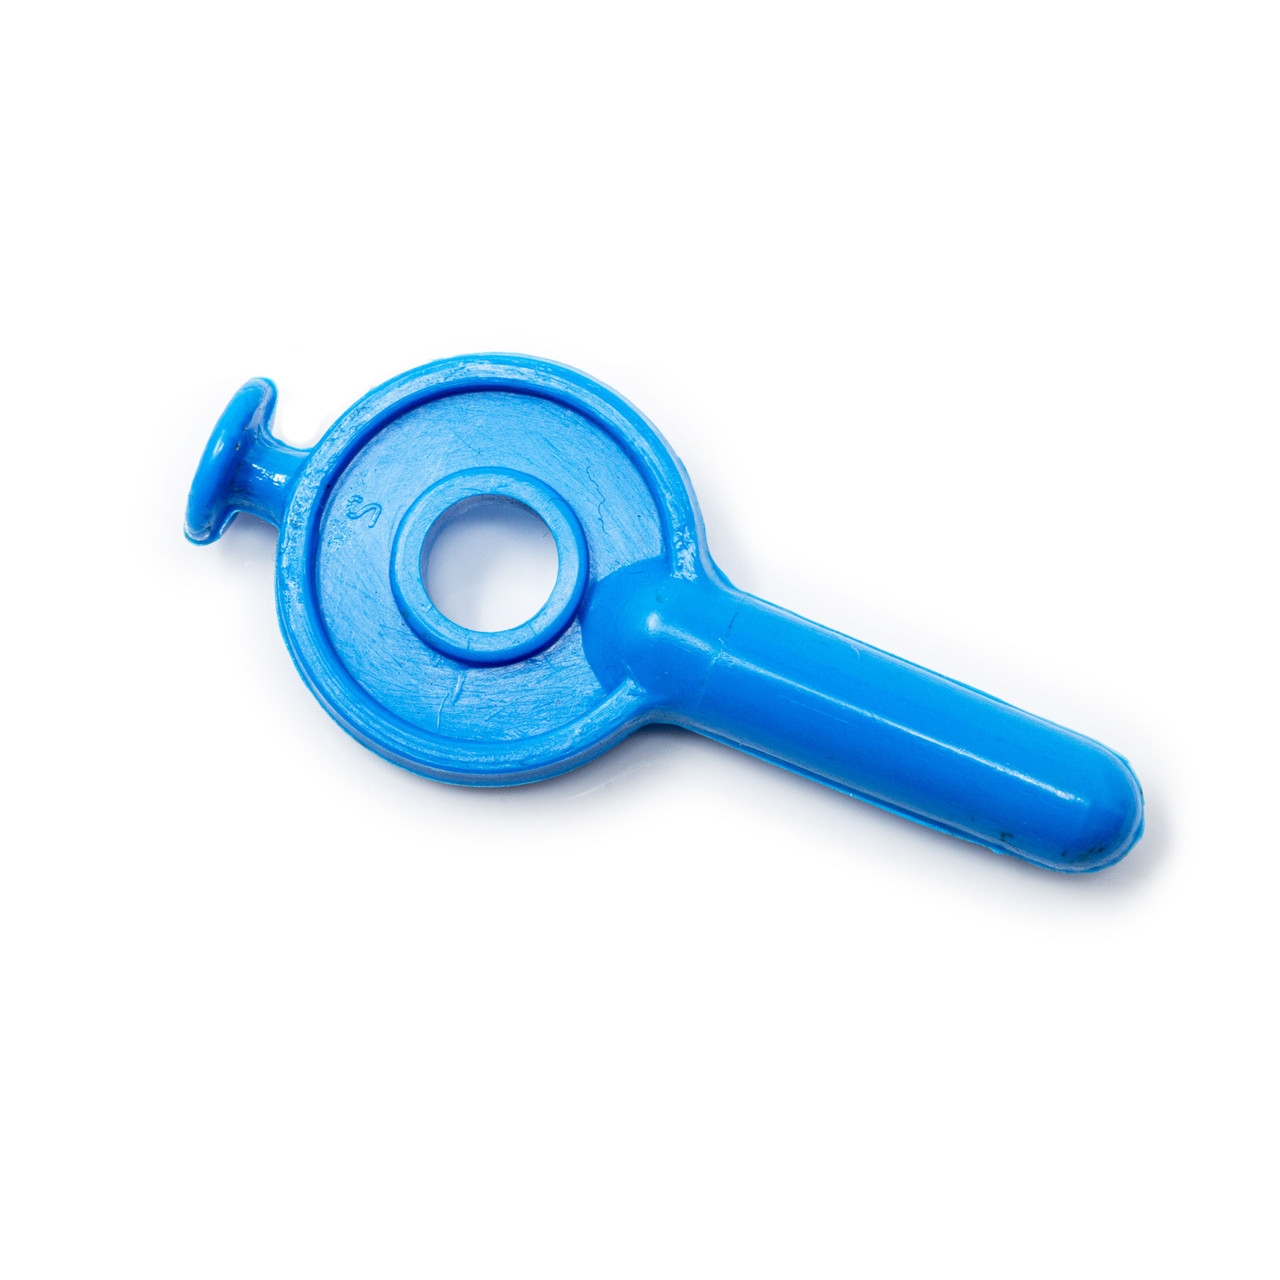 Key style spout plug for maple tubing system